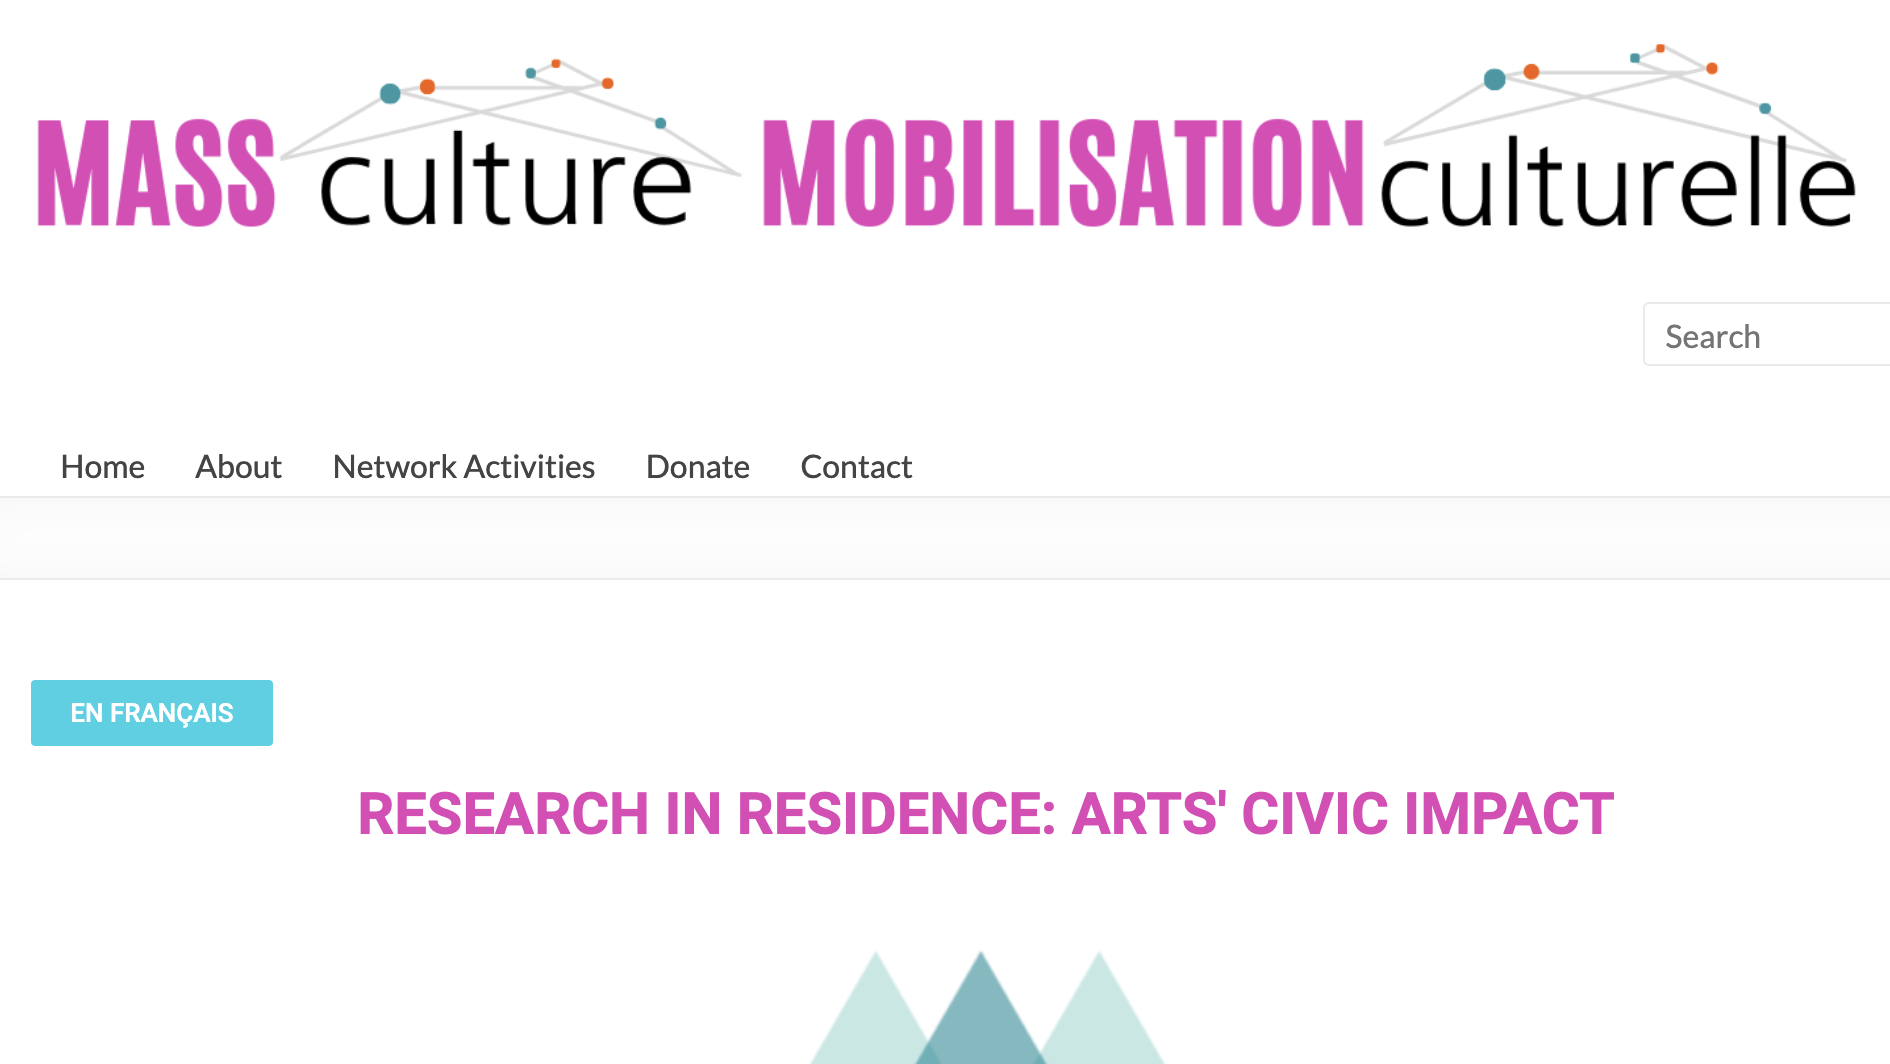 Research in Residence: Arts' Civic Impact